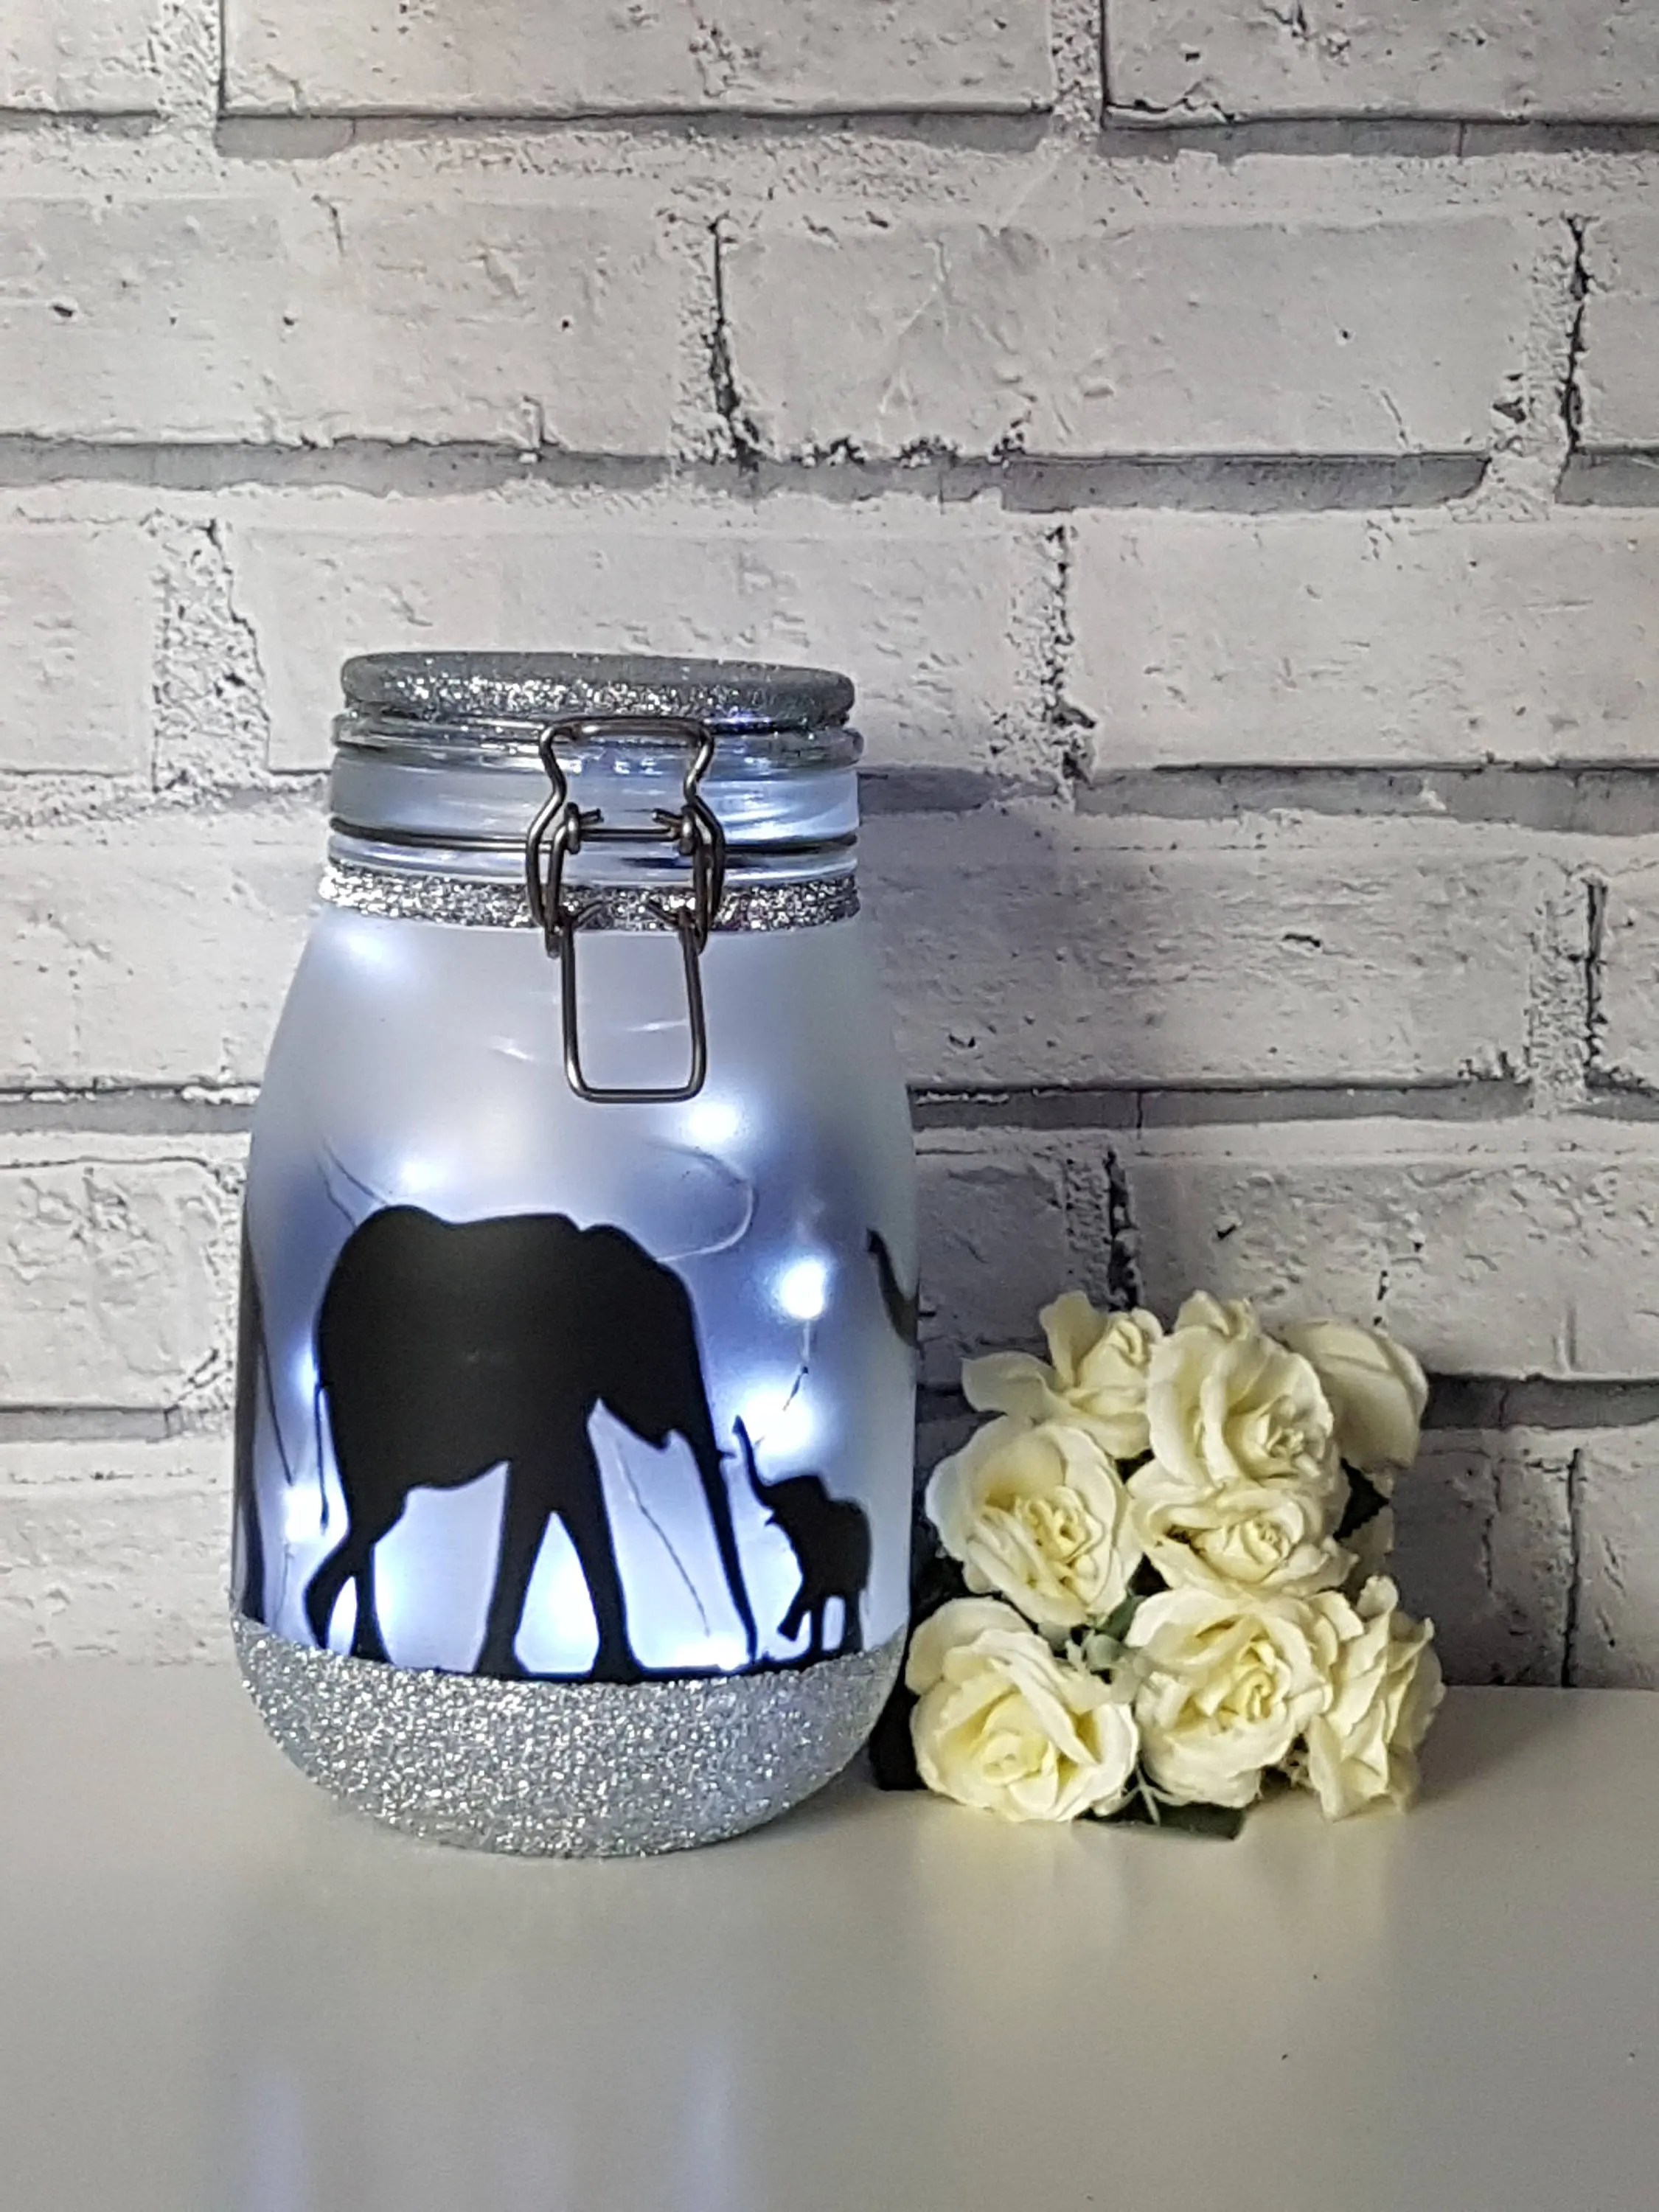 Elephant Night Light Elephant Night Light Elephant Lamp Elephant Decorelephant